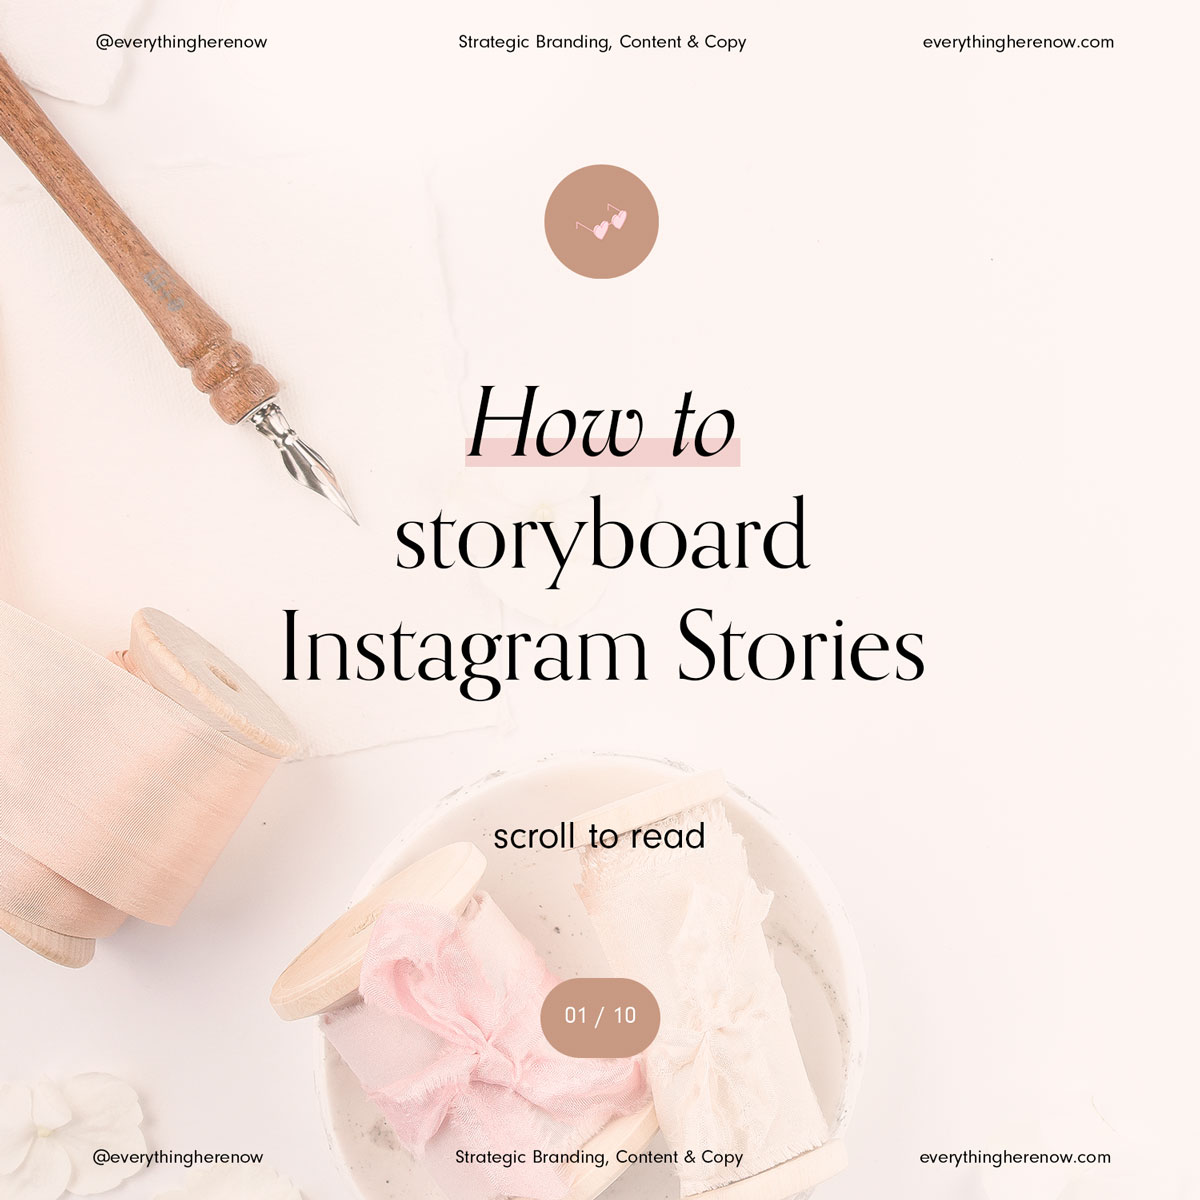 how-to-storyboard-instagram-stories-by-everything-here-now-1